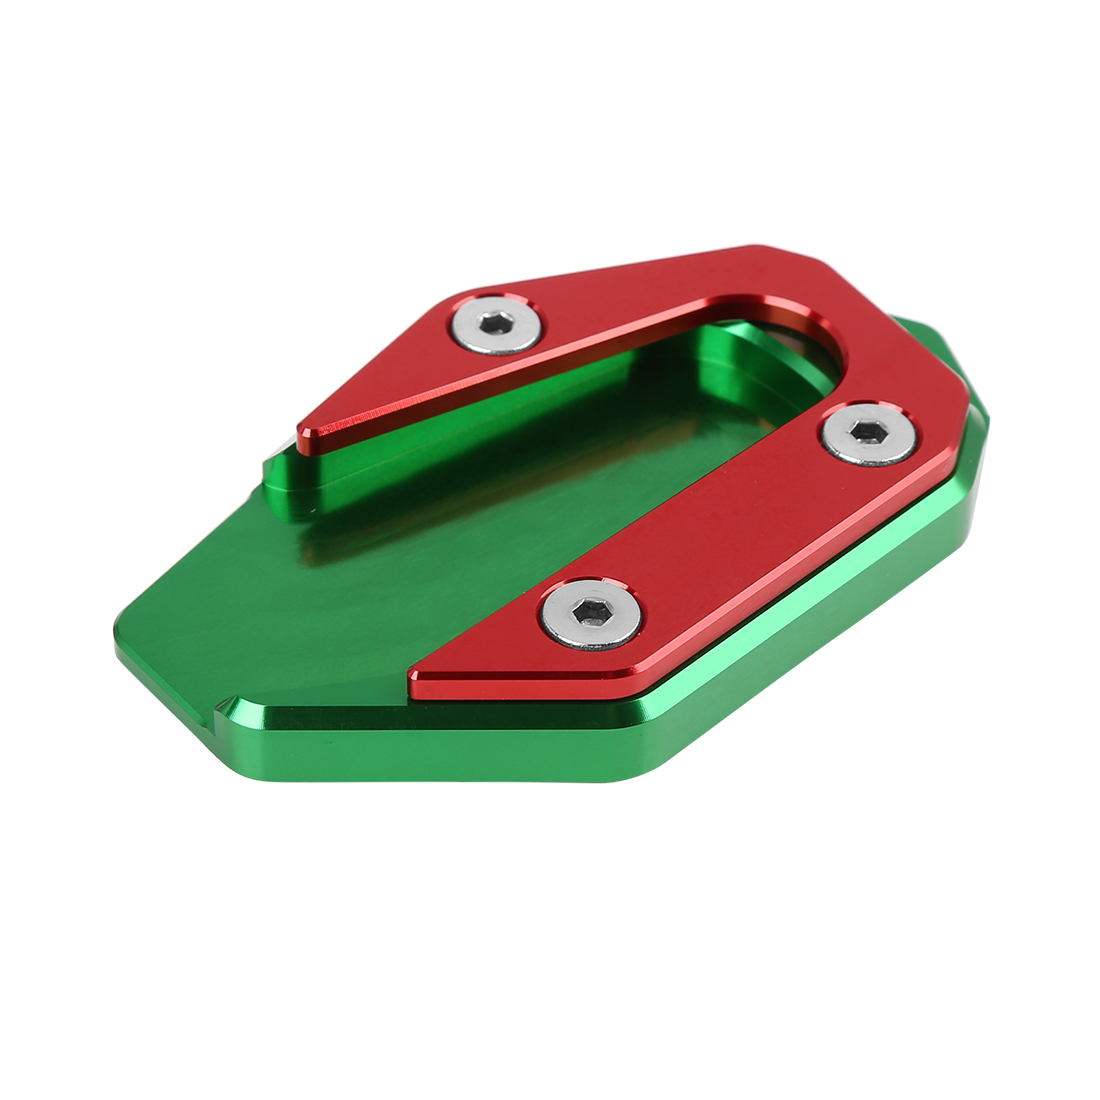 Green Red Motorcycle Kickstand Pad Extension Plate Support Parking for R3-MT03